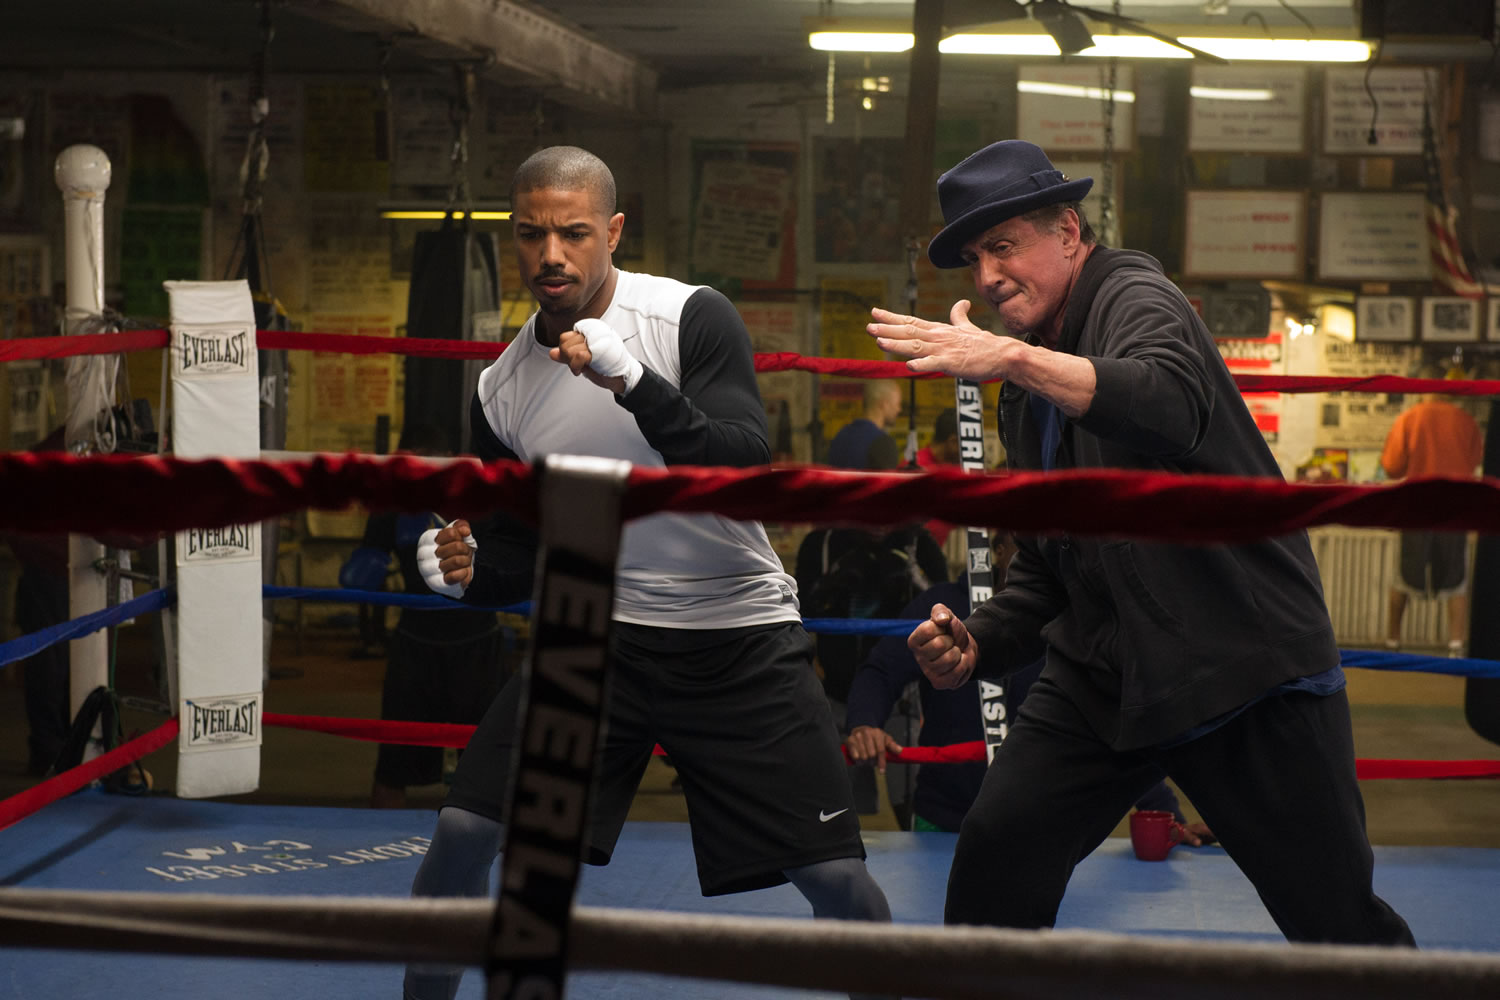 Michael B. Jordan and Sylvester Stallone starring in Creed - image credit © 2015 Metro-Goldwyn-Mayer Pictures Inc. and Warner Bros. Entertainment Inc. All Rights Reserved""